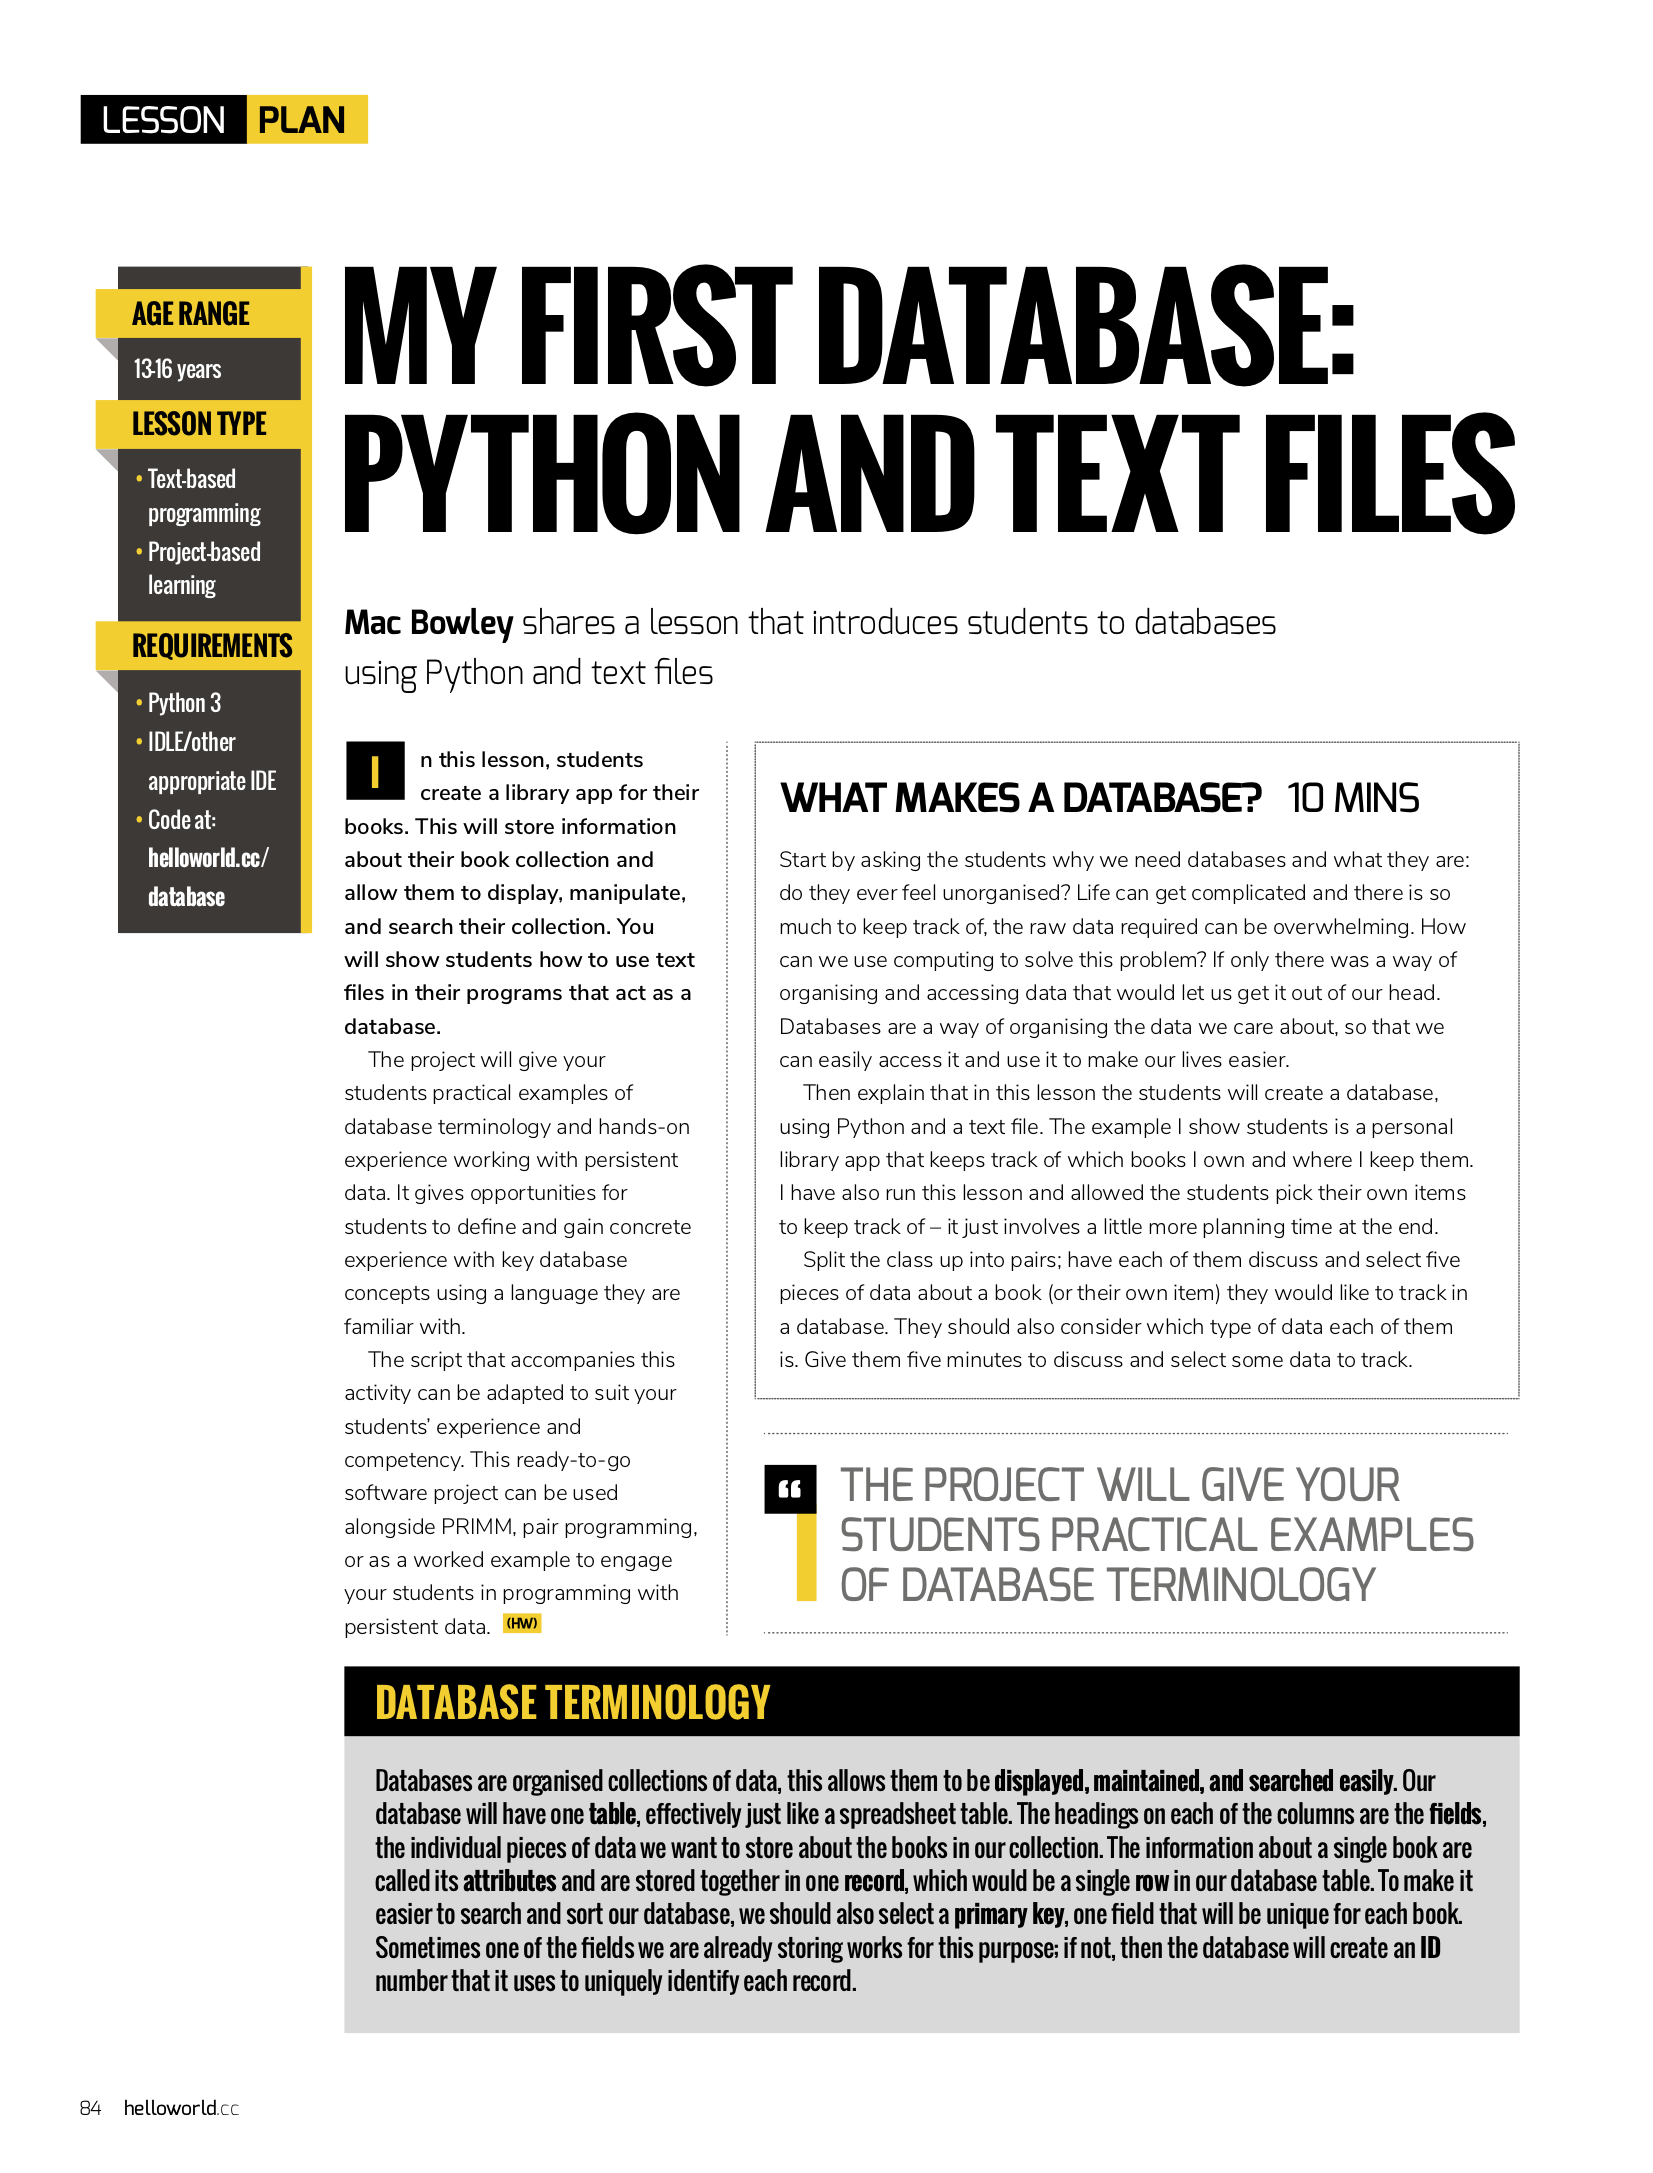 How to build databases using Python and text files | Hello